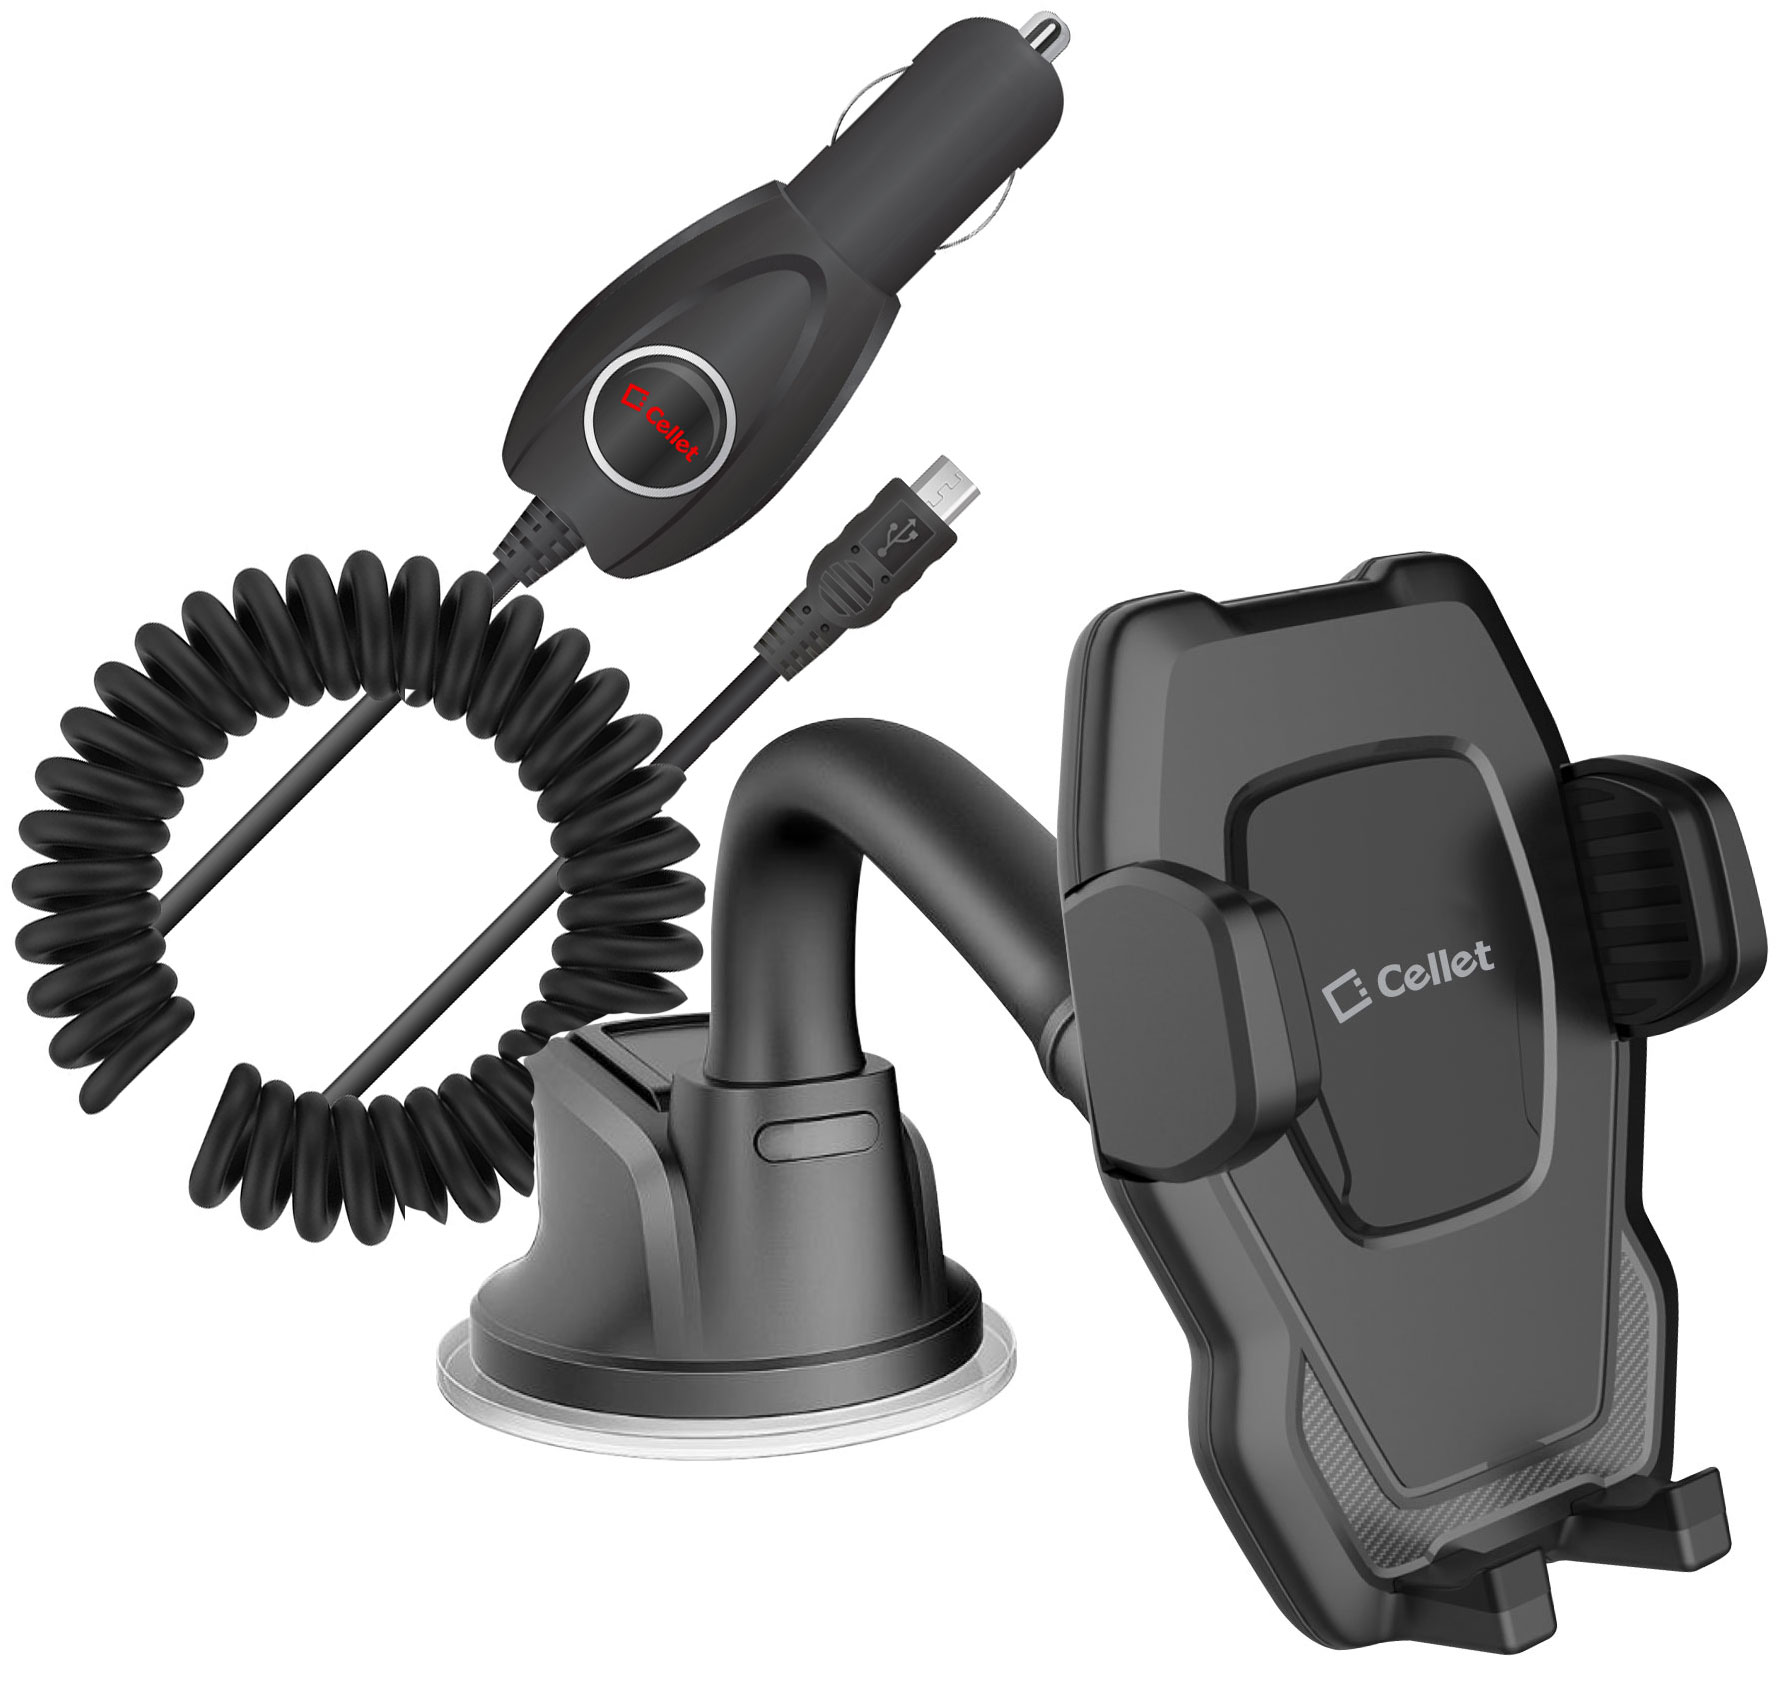 LG Volt 2 Windshield Phone Holder Goose Neck Car Charger Black